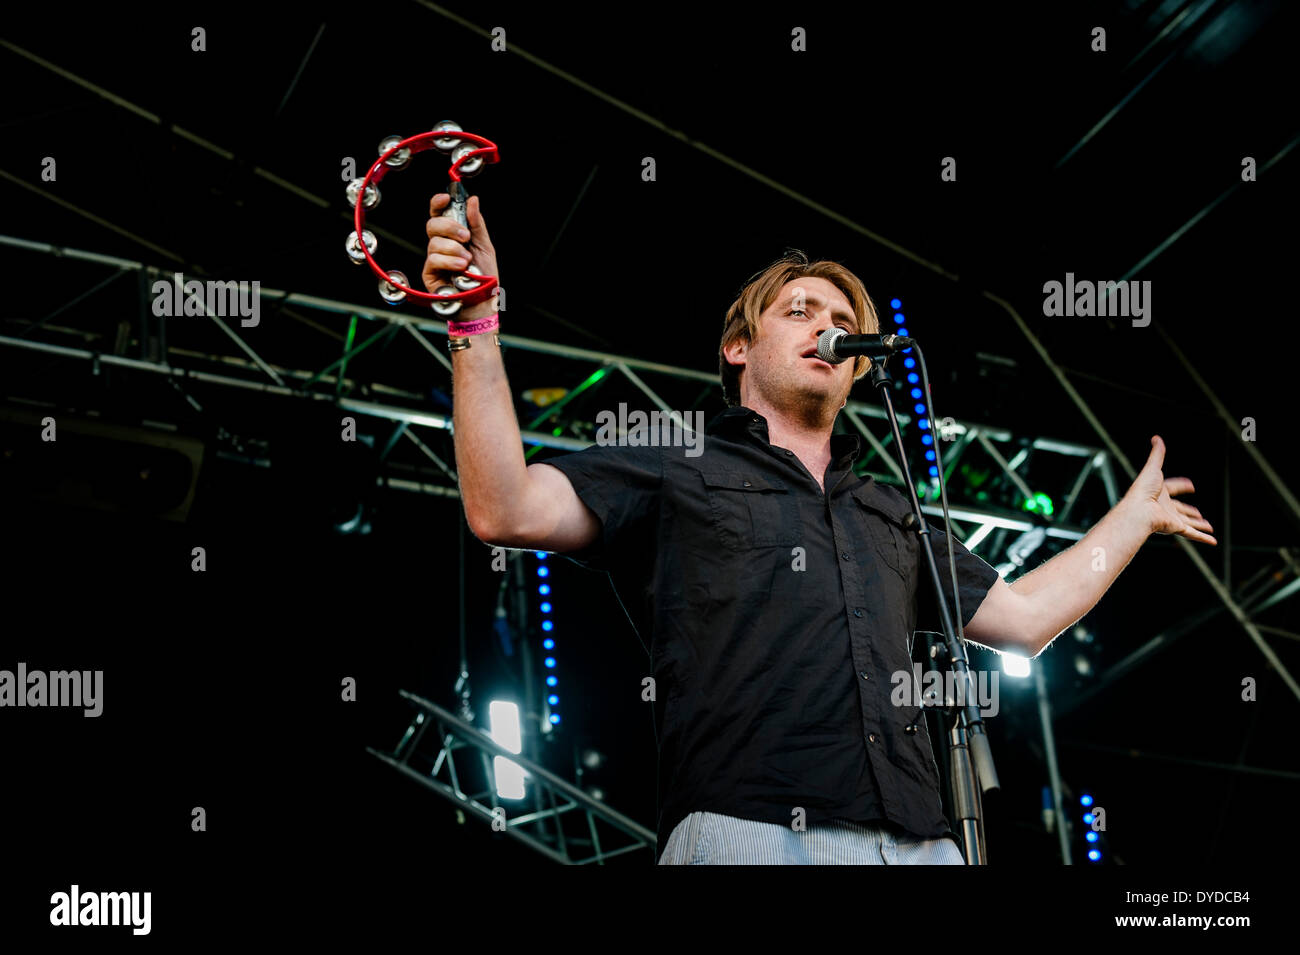 The Hamptons performing at the Brownstock Festival in Essex. - Stock Image